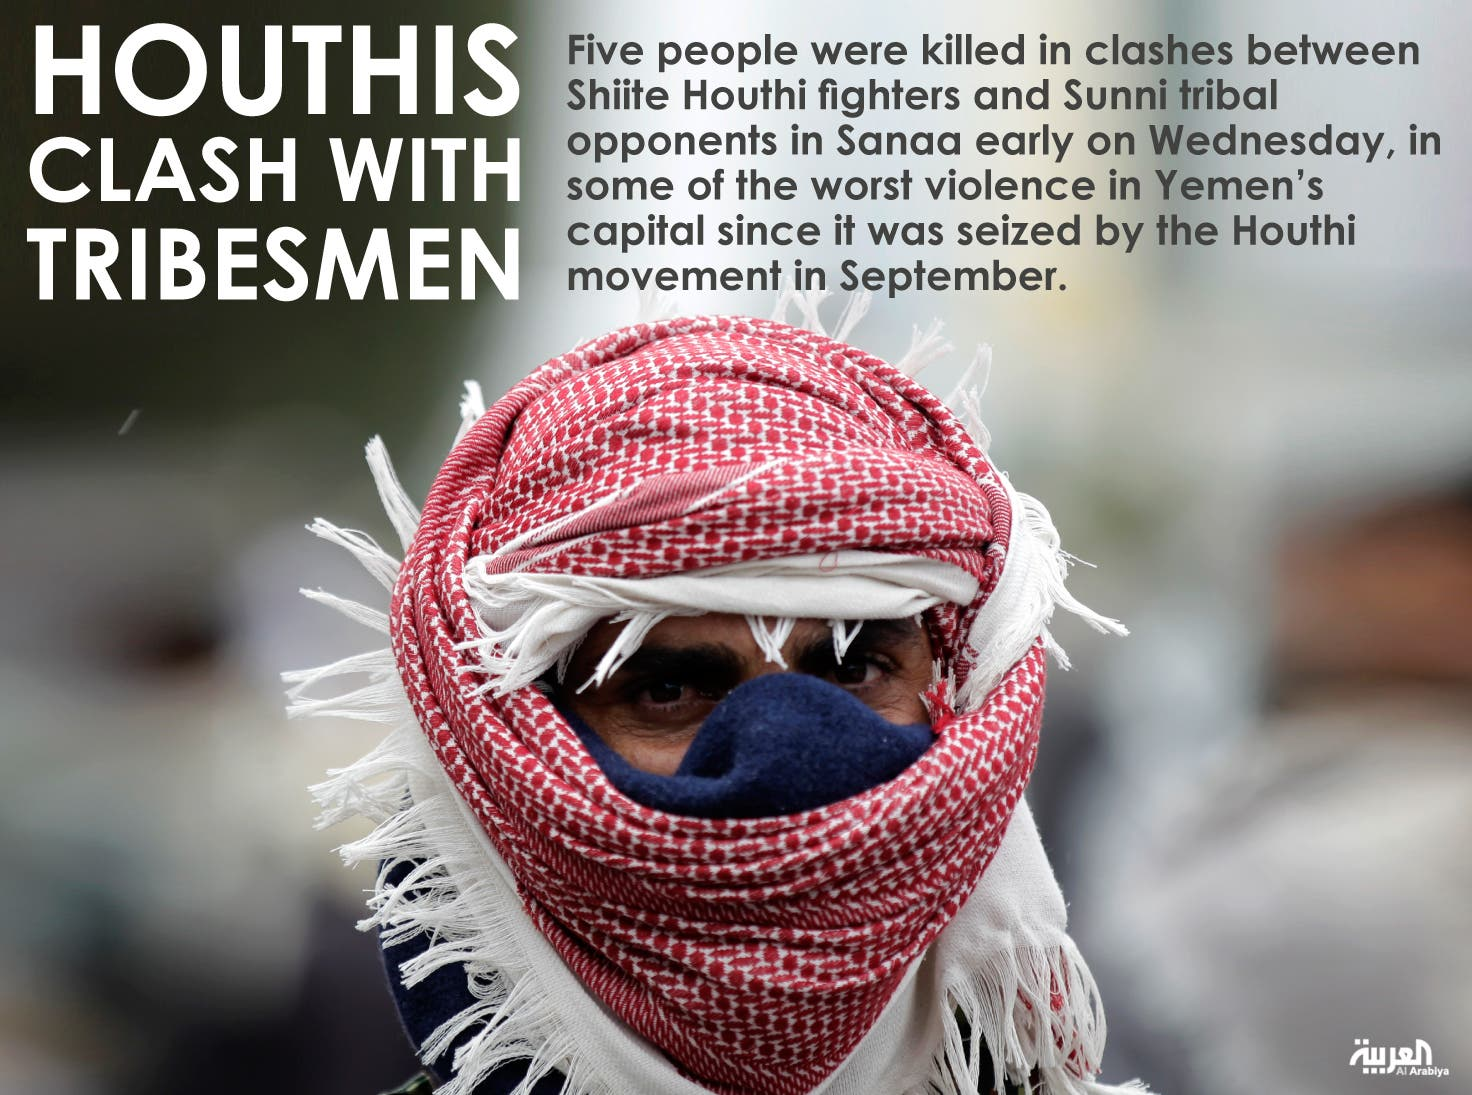 Houthis clash with tribesmen